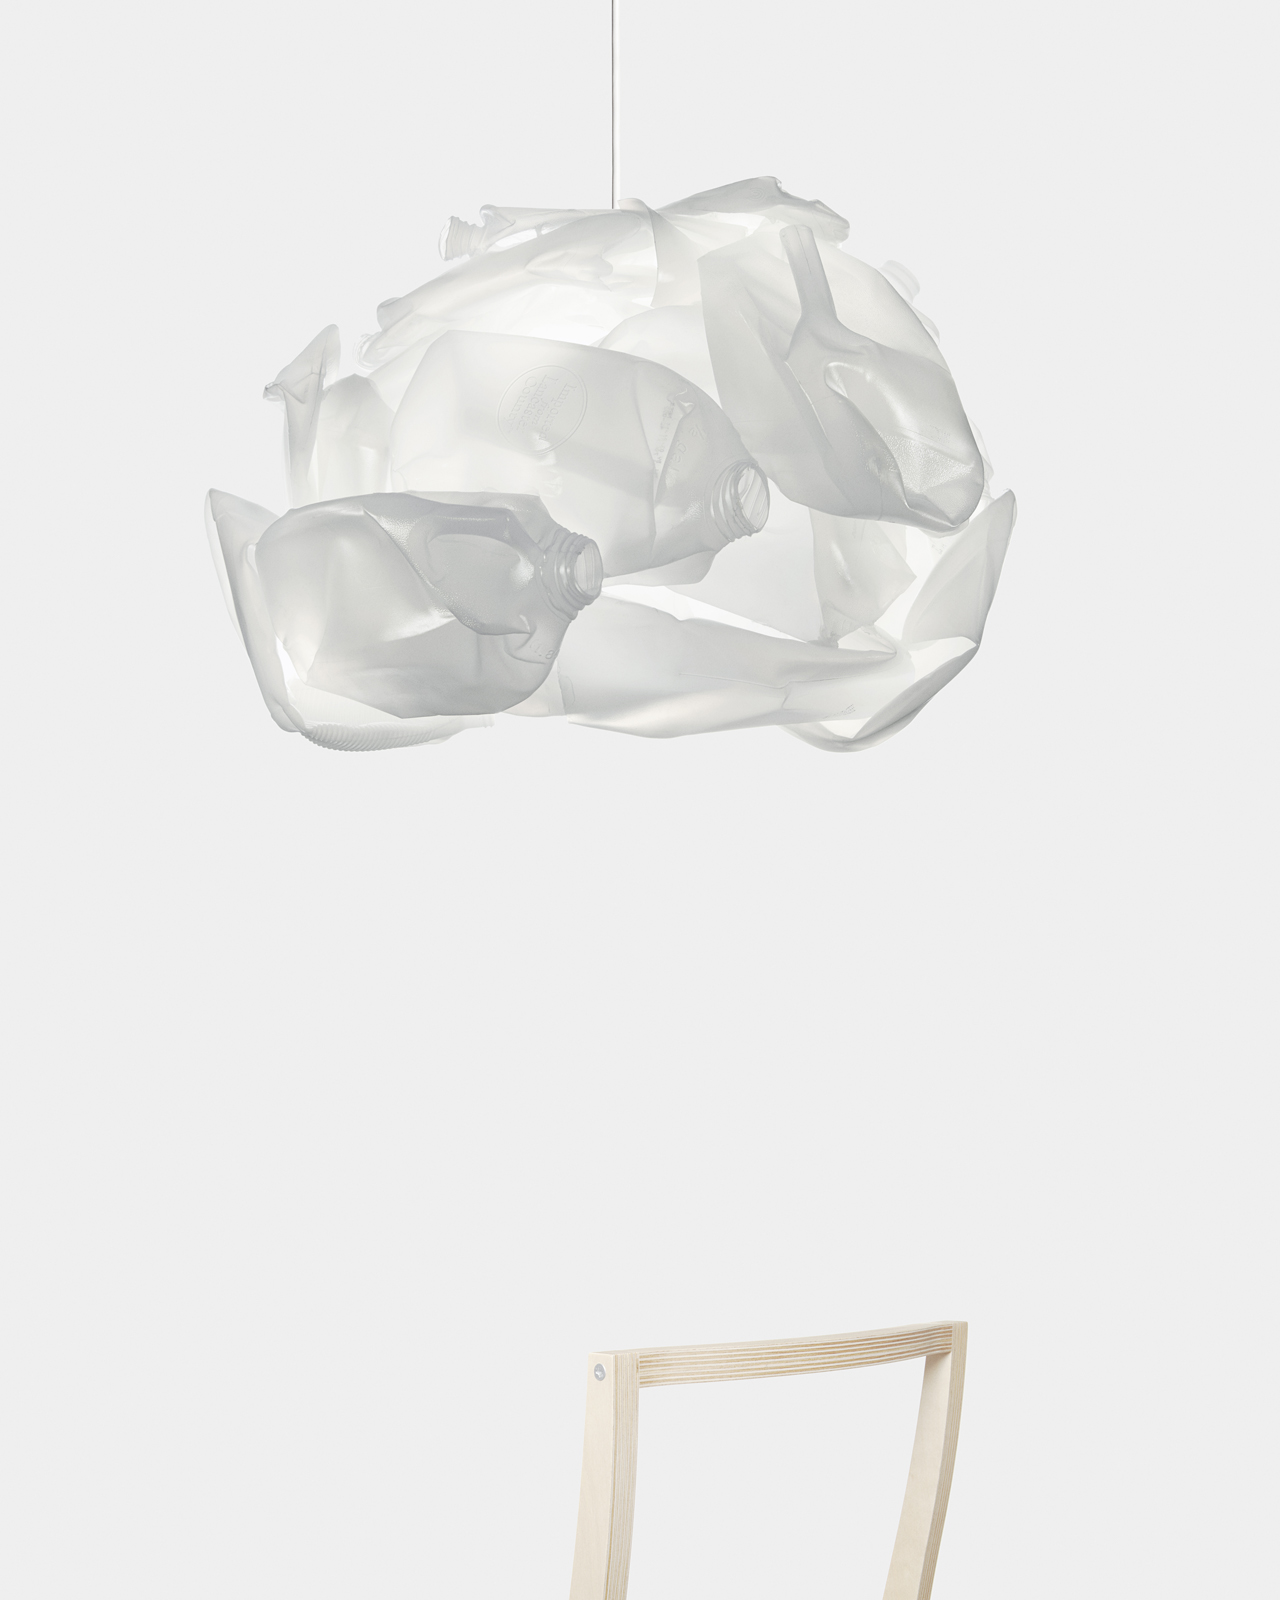 Stephen Burks, <i>Untitled (HDPE lamp)</i>, 2011. Photo by Kevin Kunstandt & Andrew Kenny.